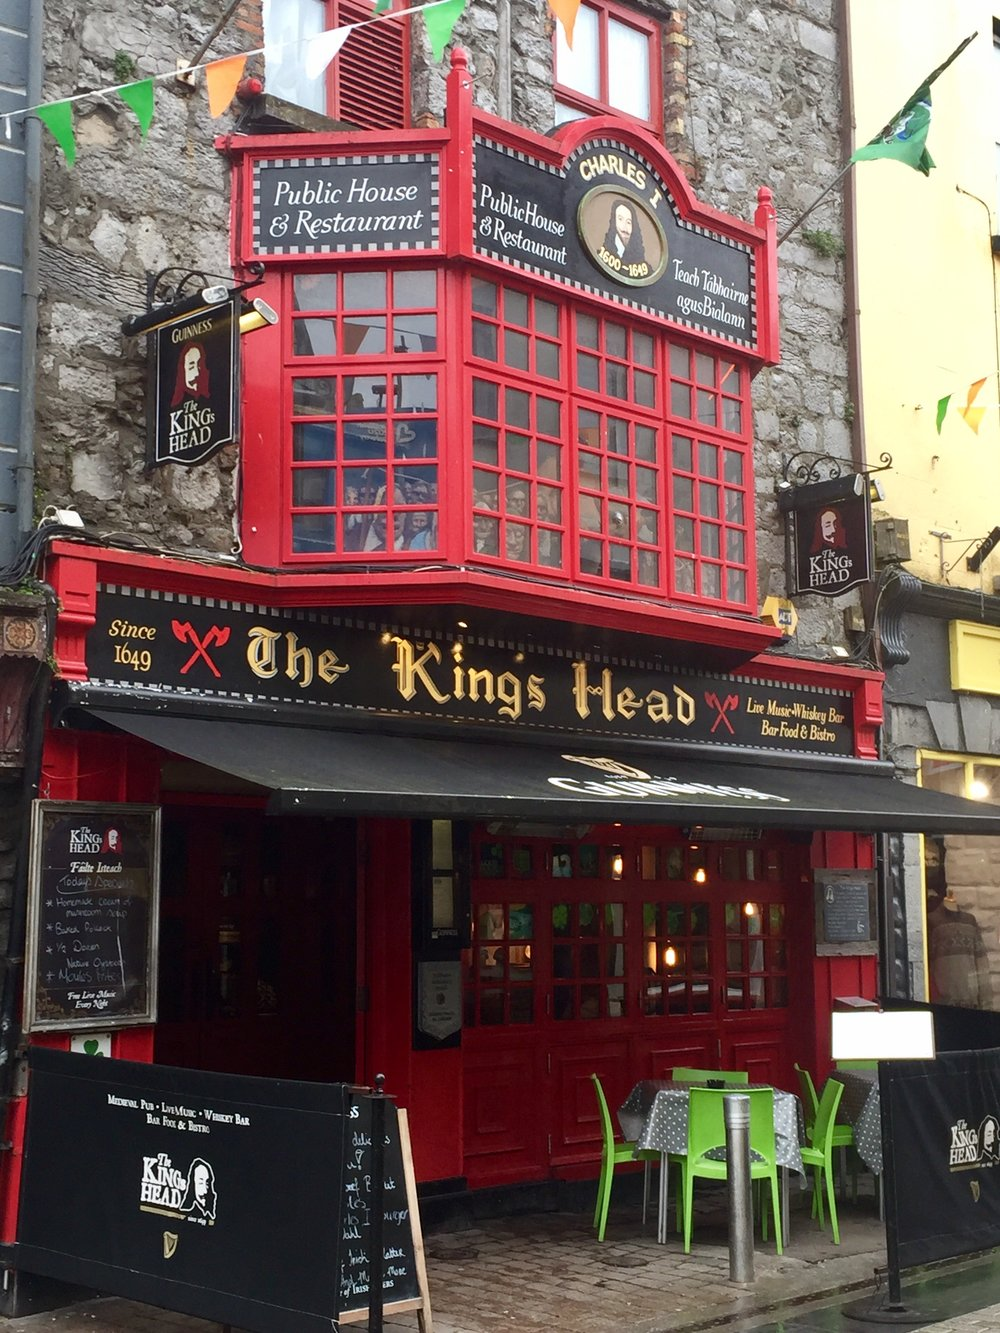 The exterior of the King's Head Tavern